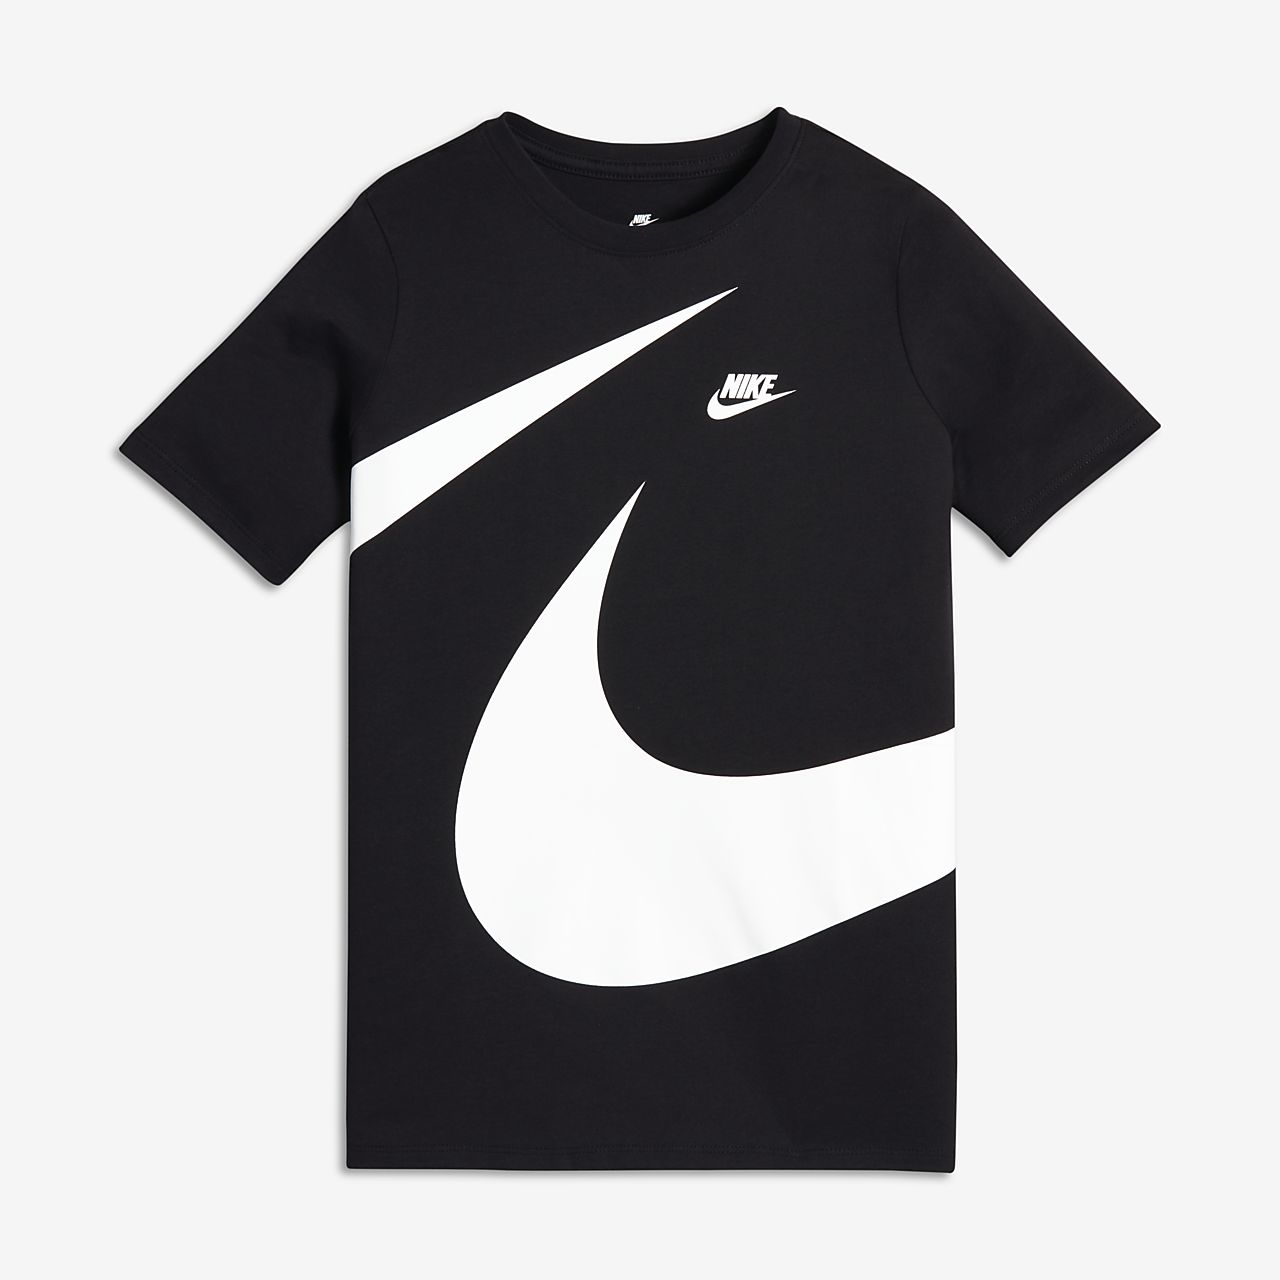 finest selection e51df a1dcb Nike Sportswear Older Kids (Boys) T-Shirt. Nike.com IN